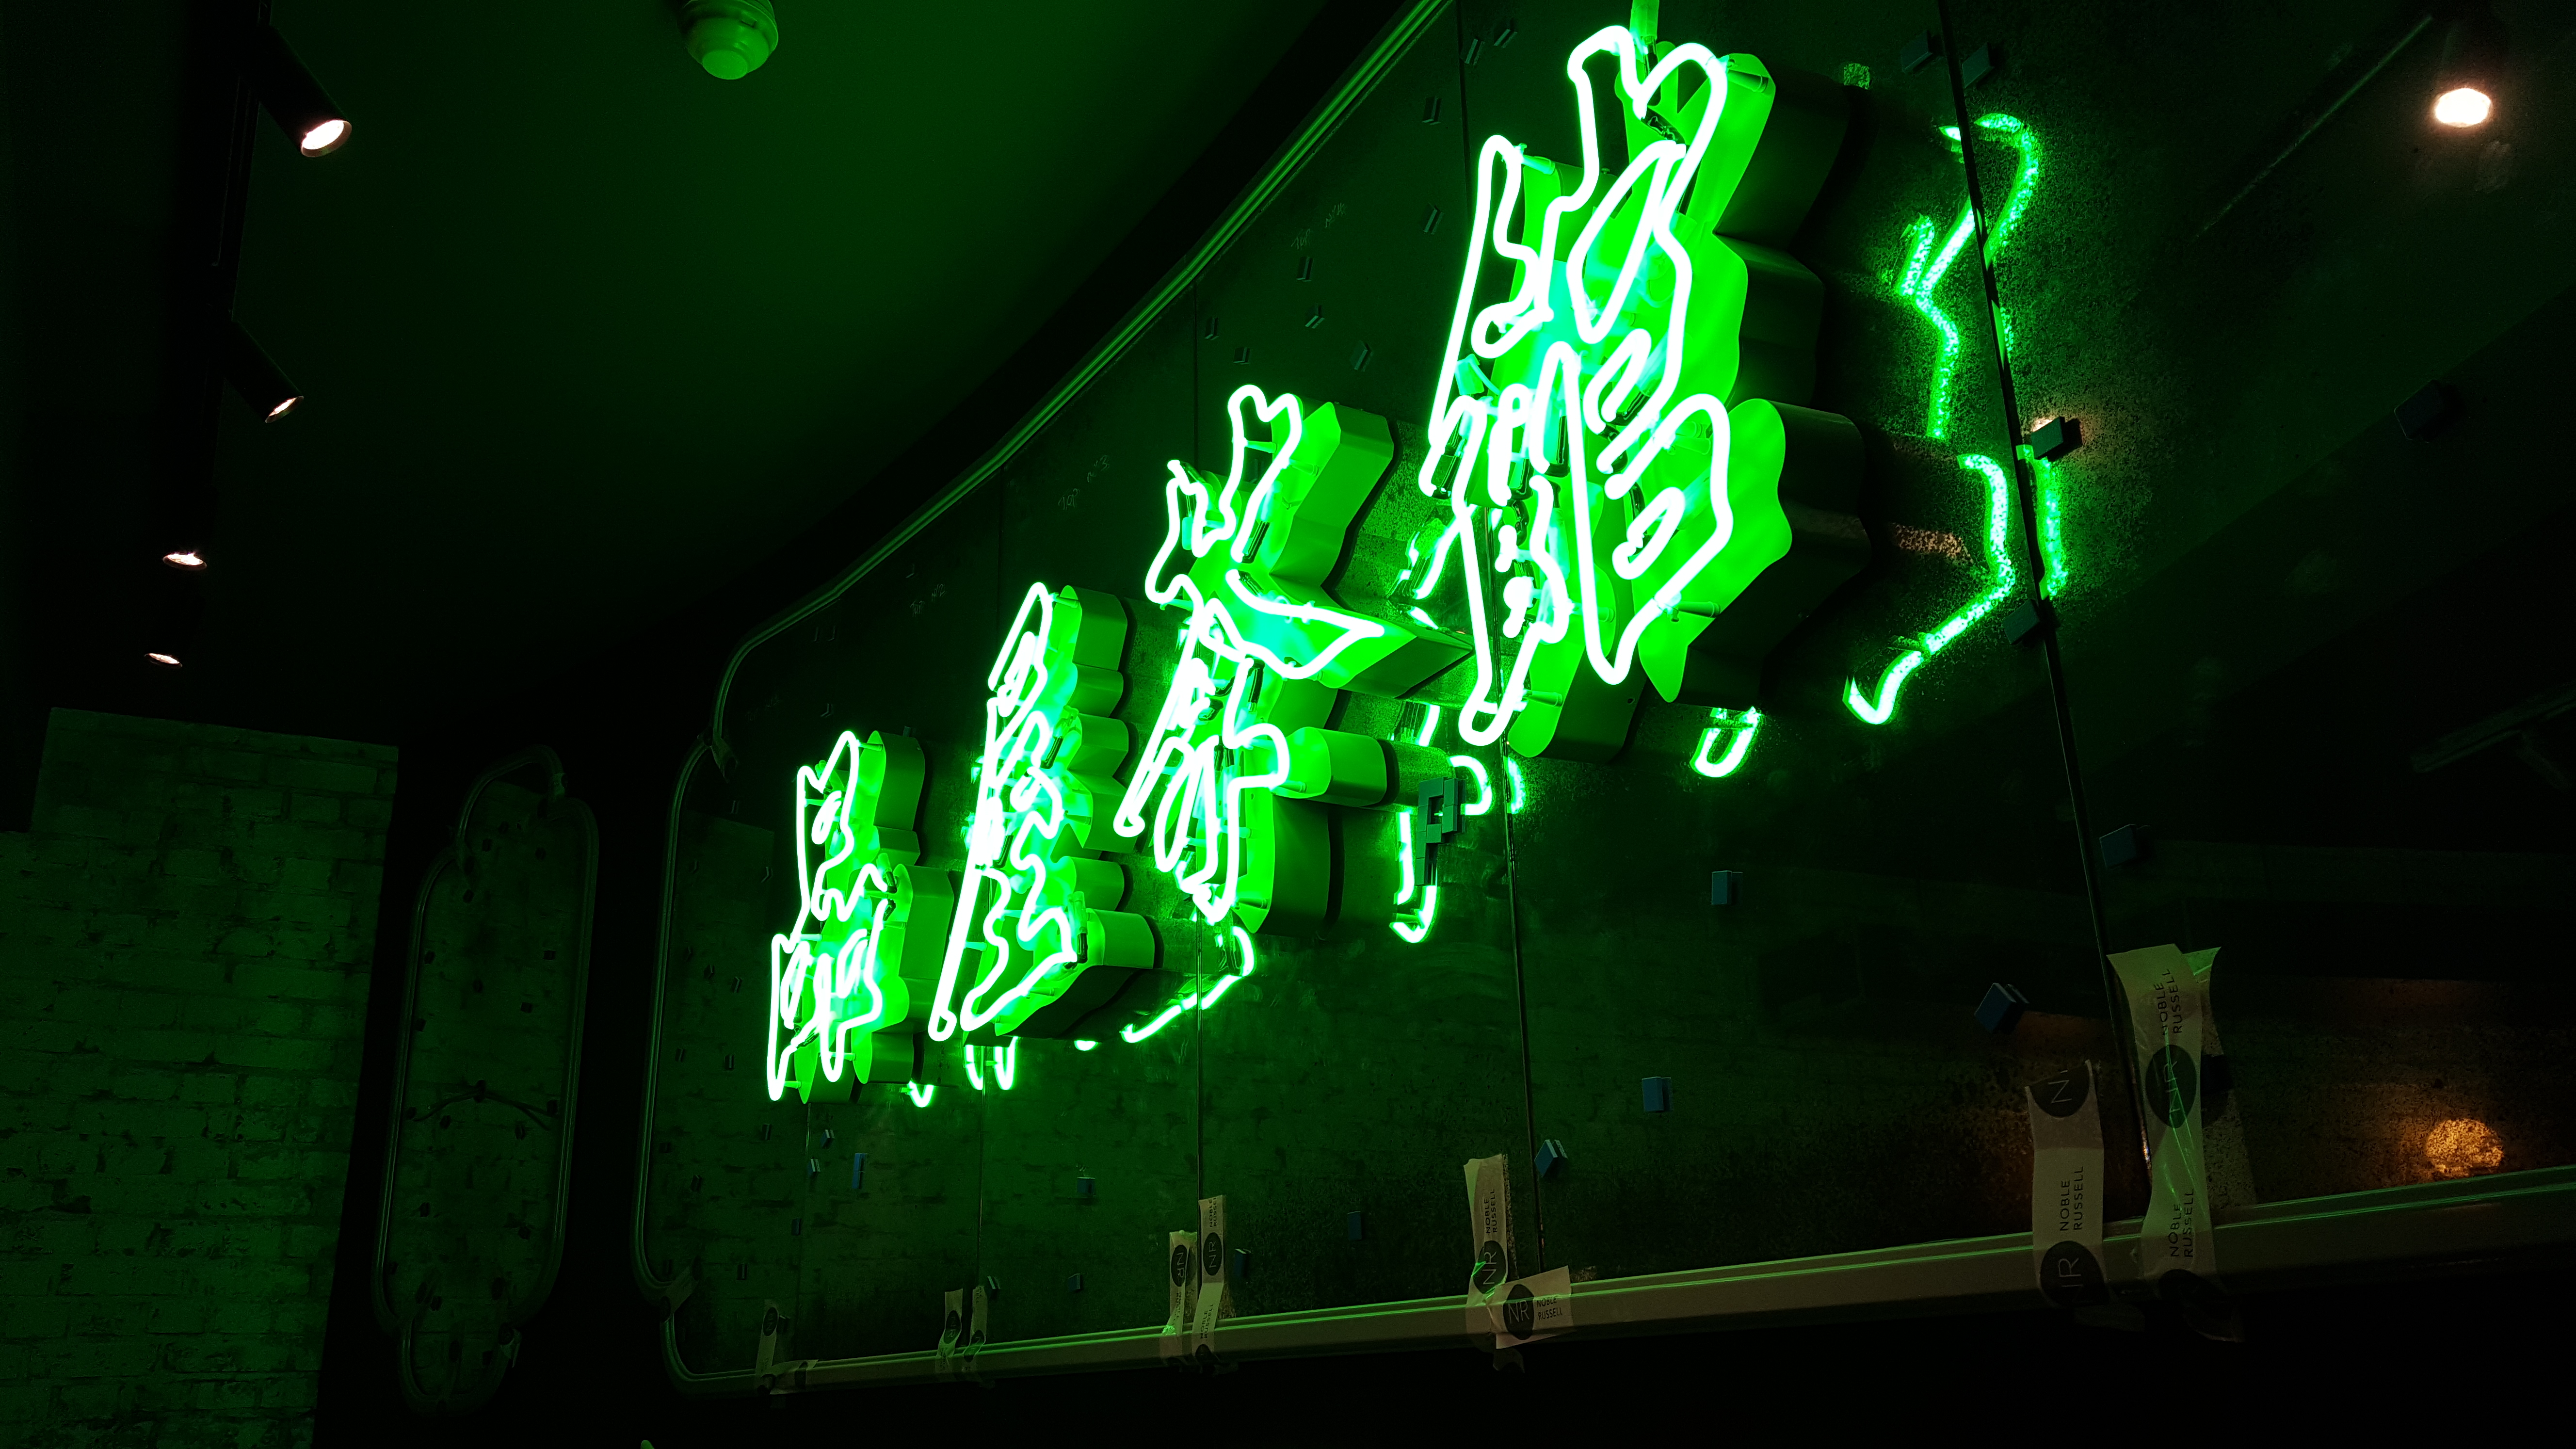 this neon full bar cheap relaxing sale wells view signs cafe a lights to tremendous arrival new indoor ar click for as lighting ford light fat sign focus bright bud tire special year